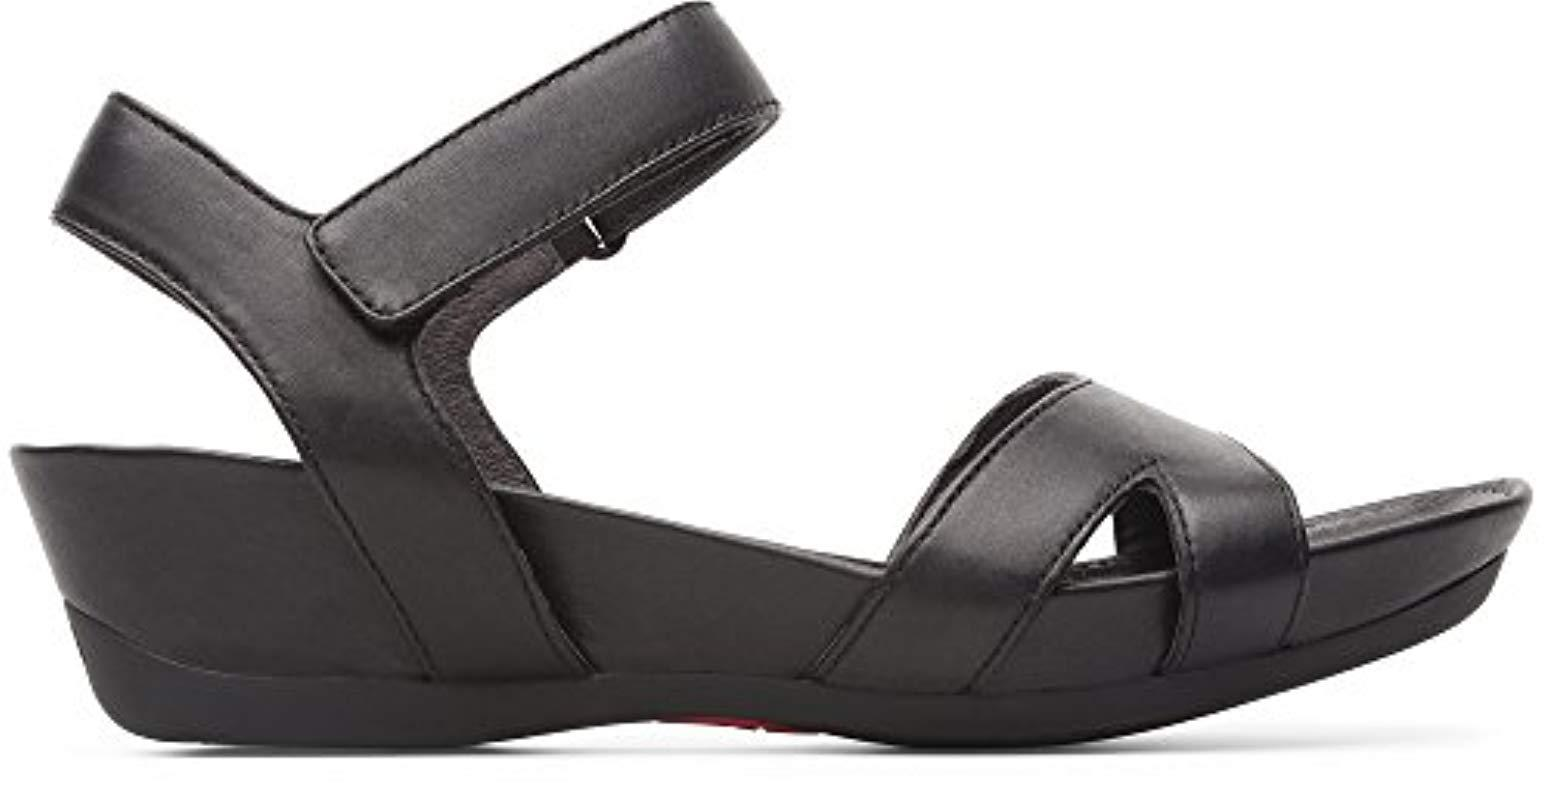 010854cc6547 Lyst - Camper Micro Heeled Sandal in Black - Save 11%